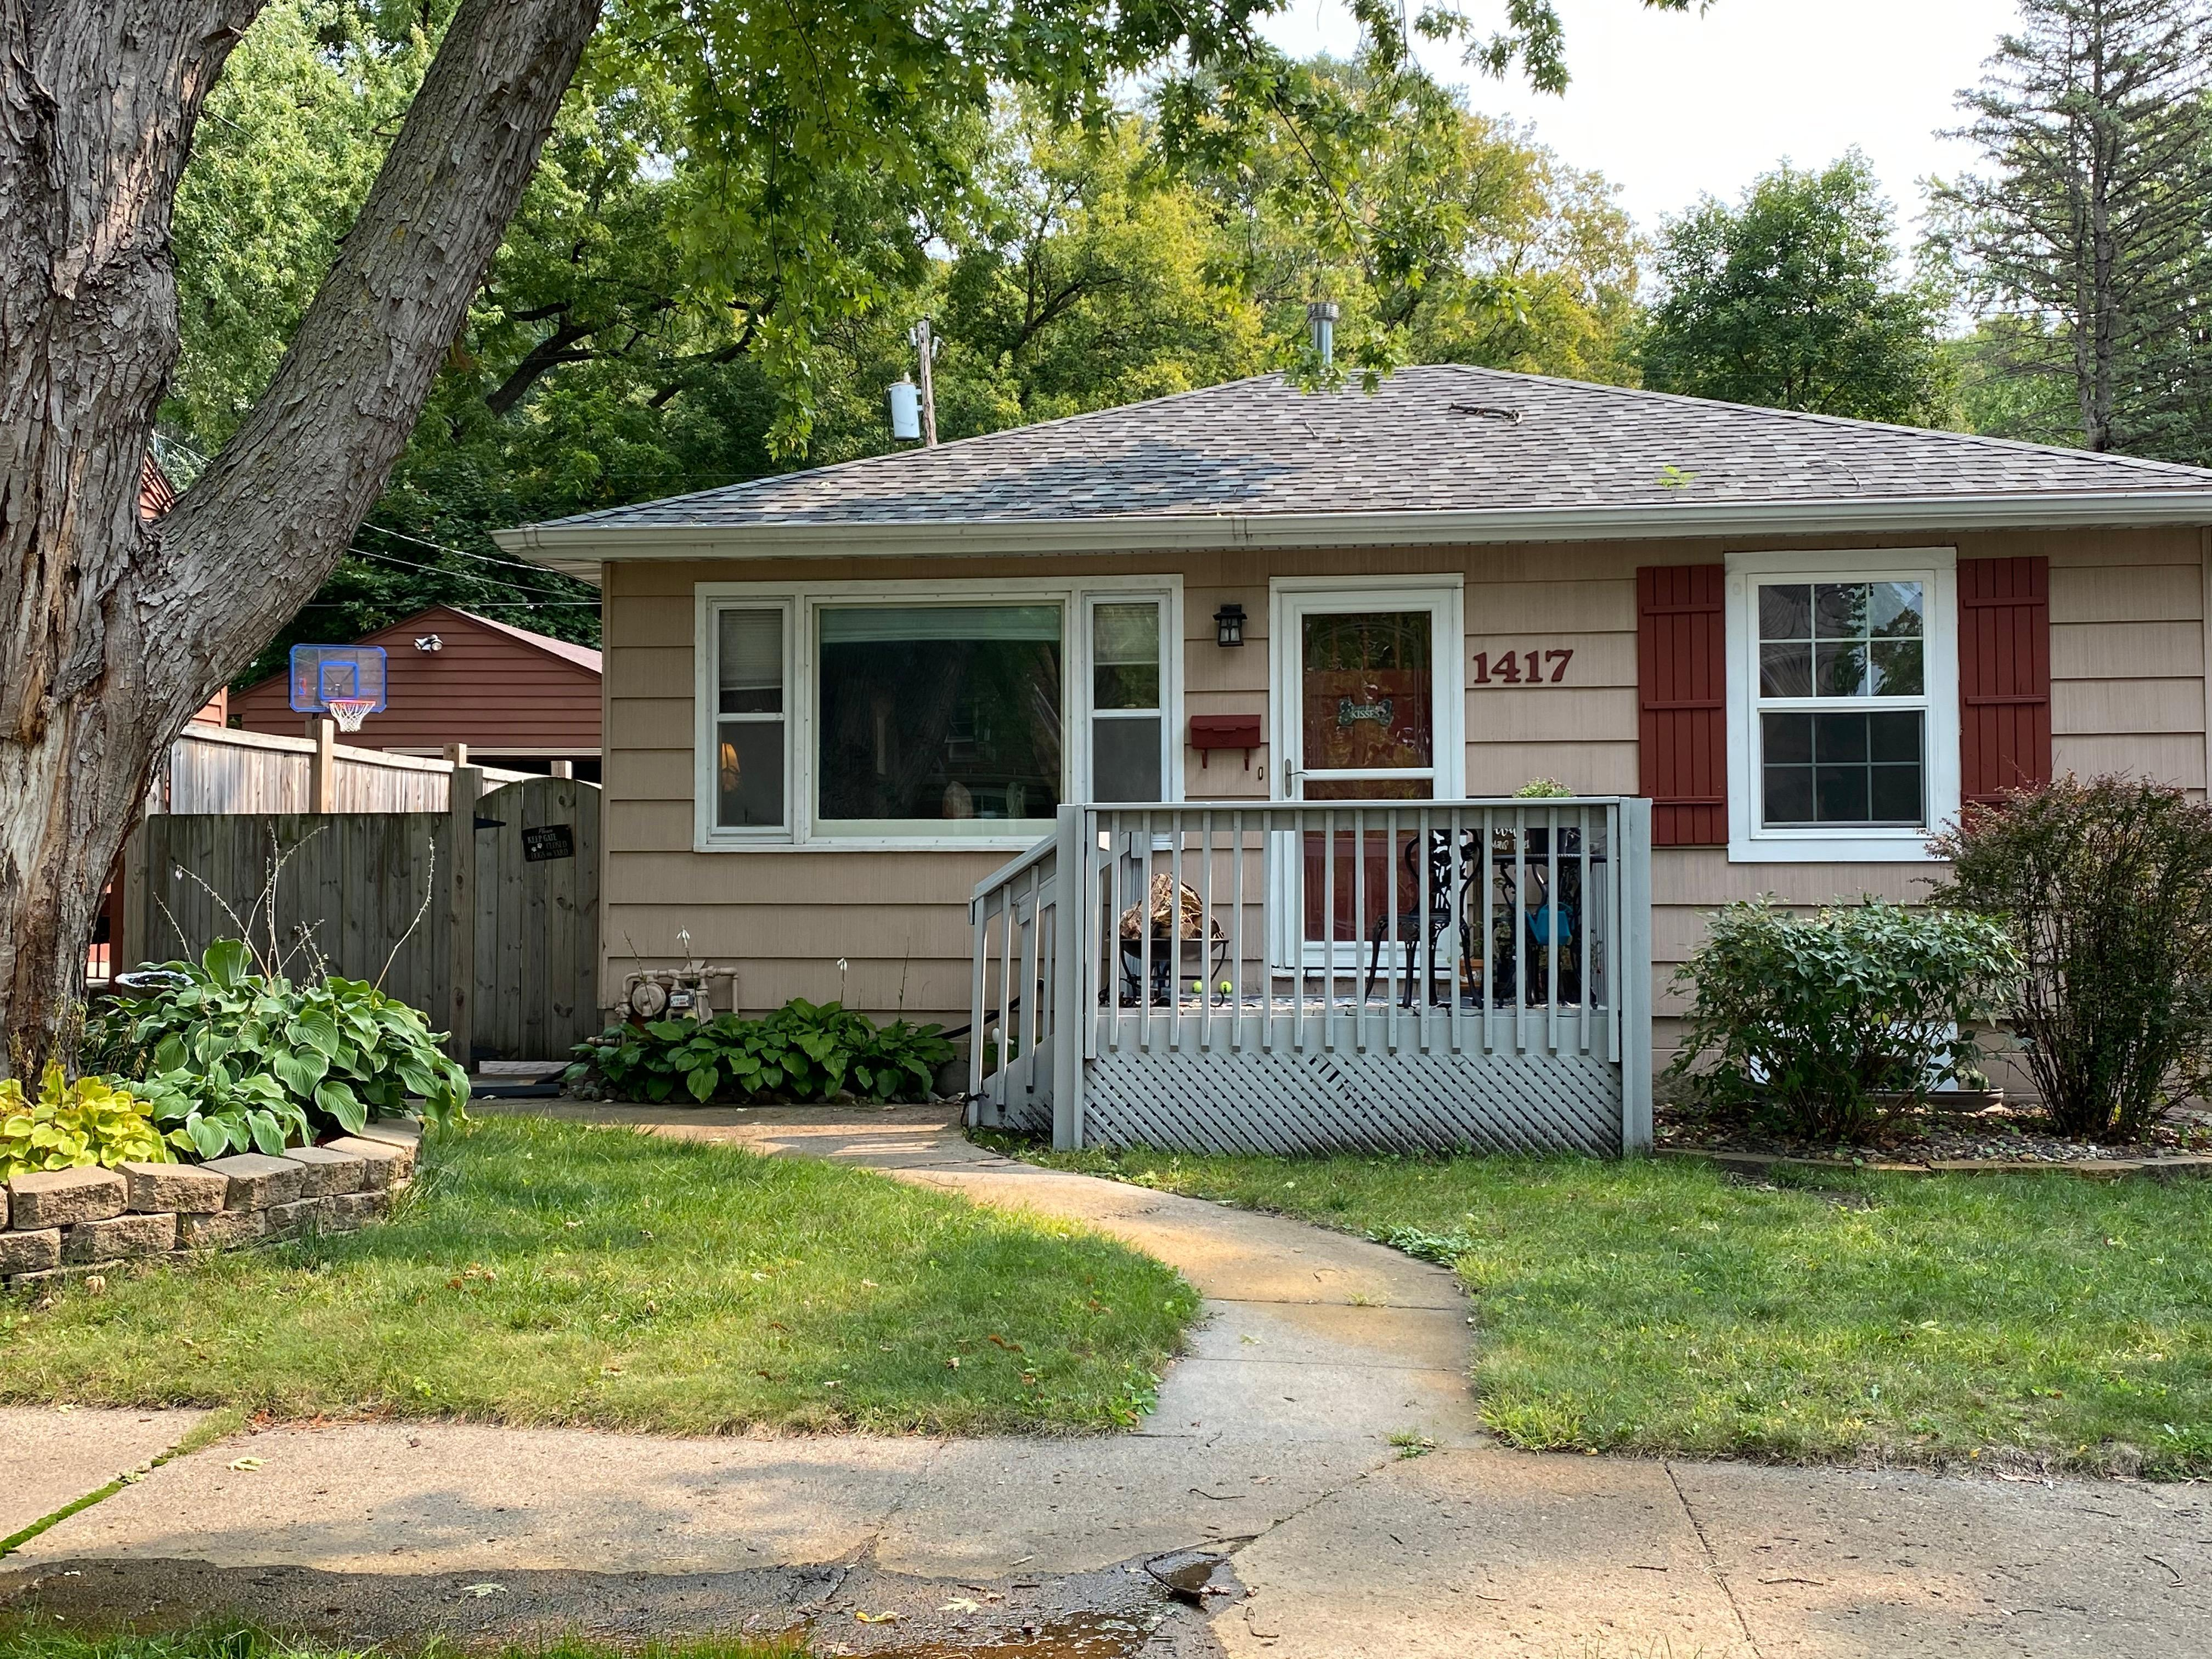 1417 N 5th Street Property Photo - Mankato, MN real estate listing